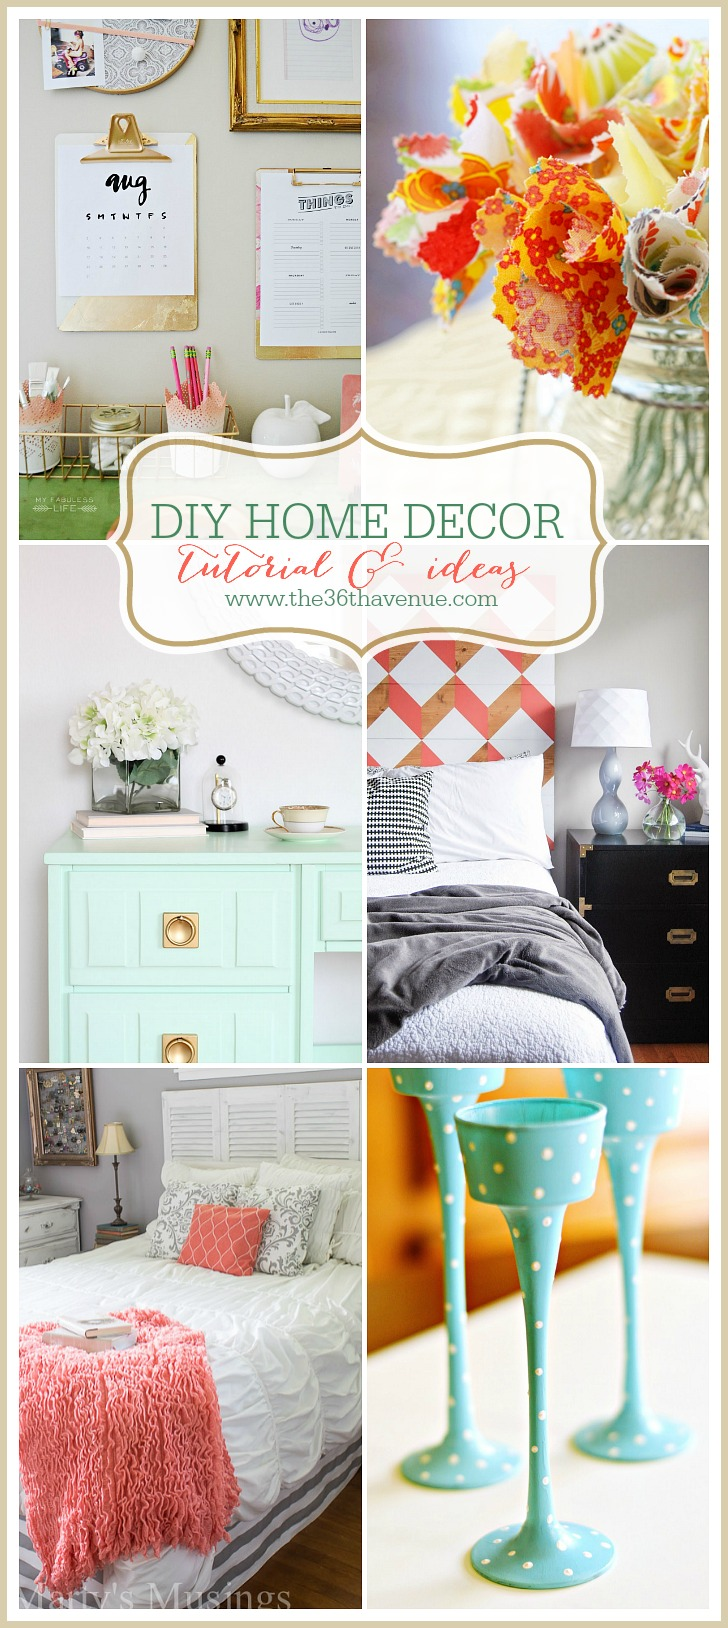 You might be left wondering where to put all of your belongings or how to make the space livable. Decor Ideas Diy Projects